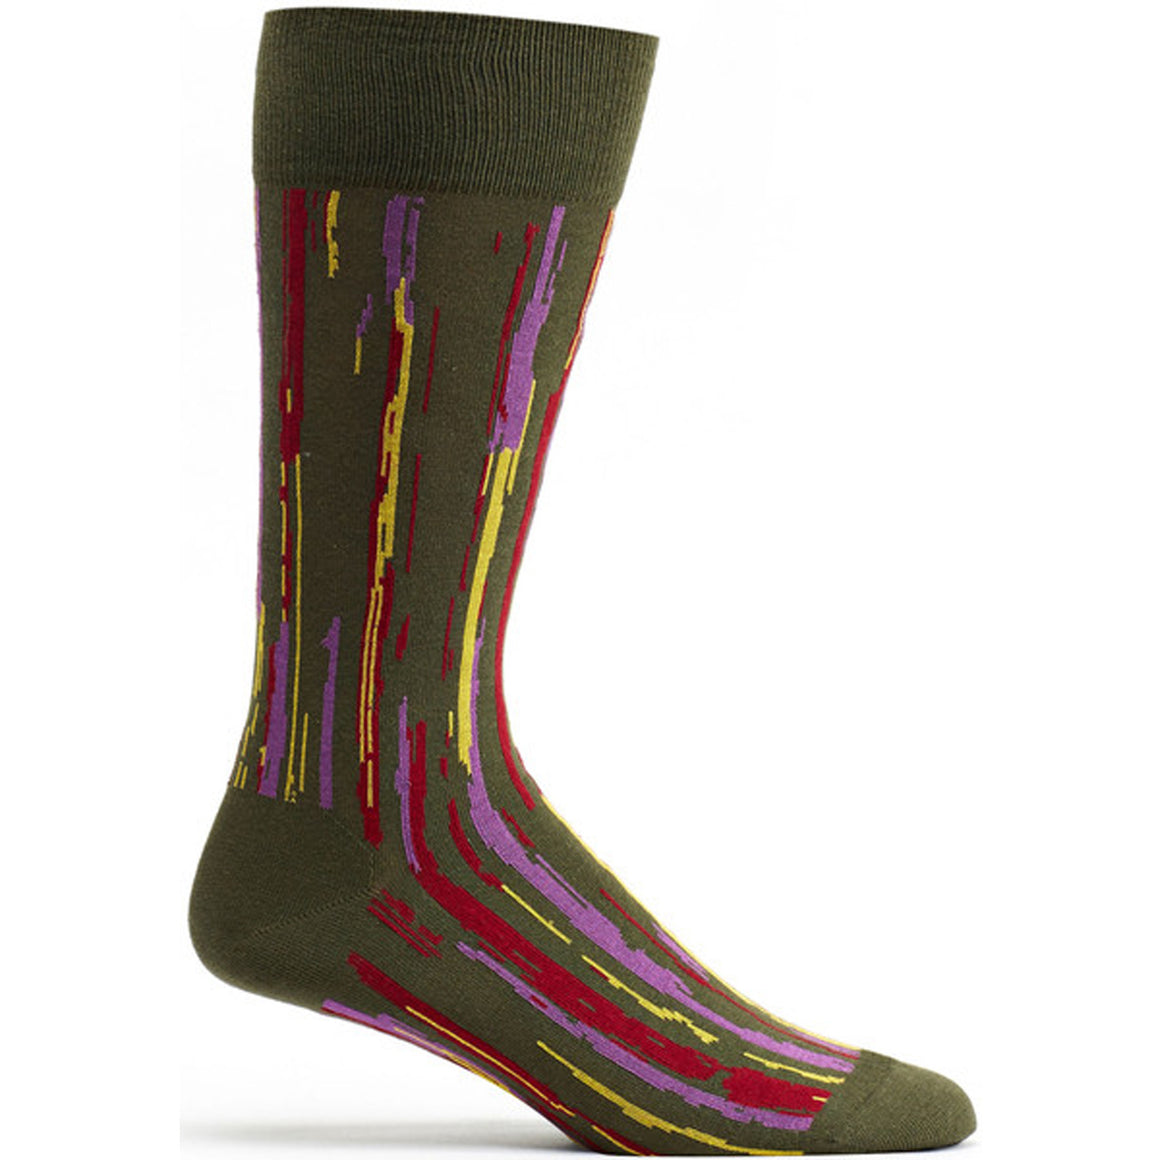 Mens Stripe Overlap Sock in Fougere size 10-13 mens from ozone socks